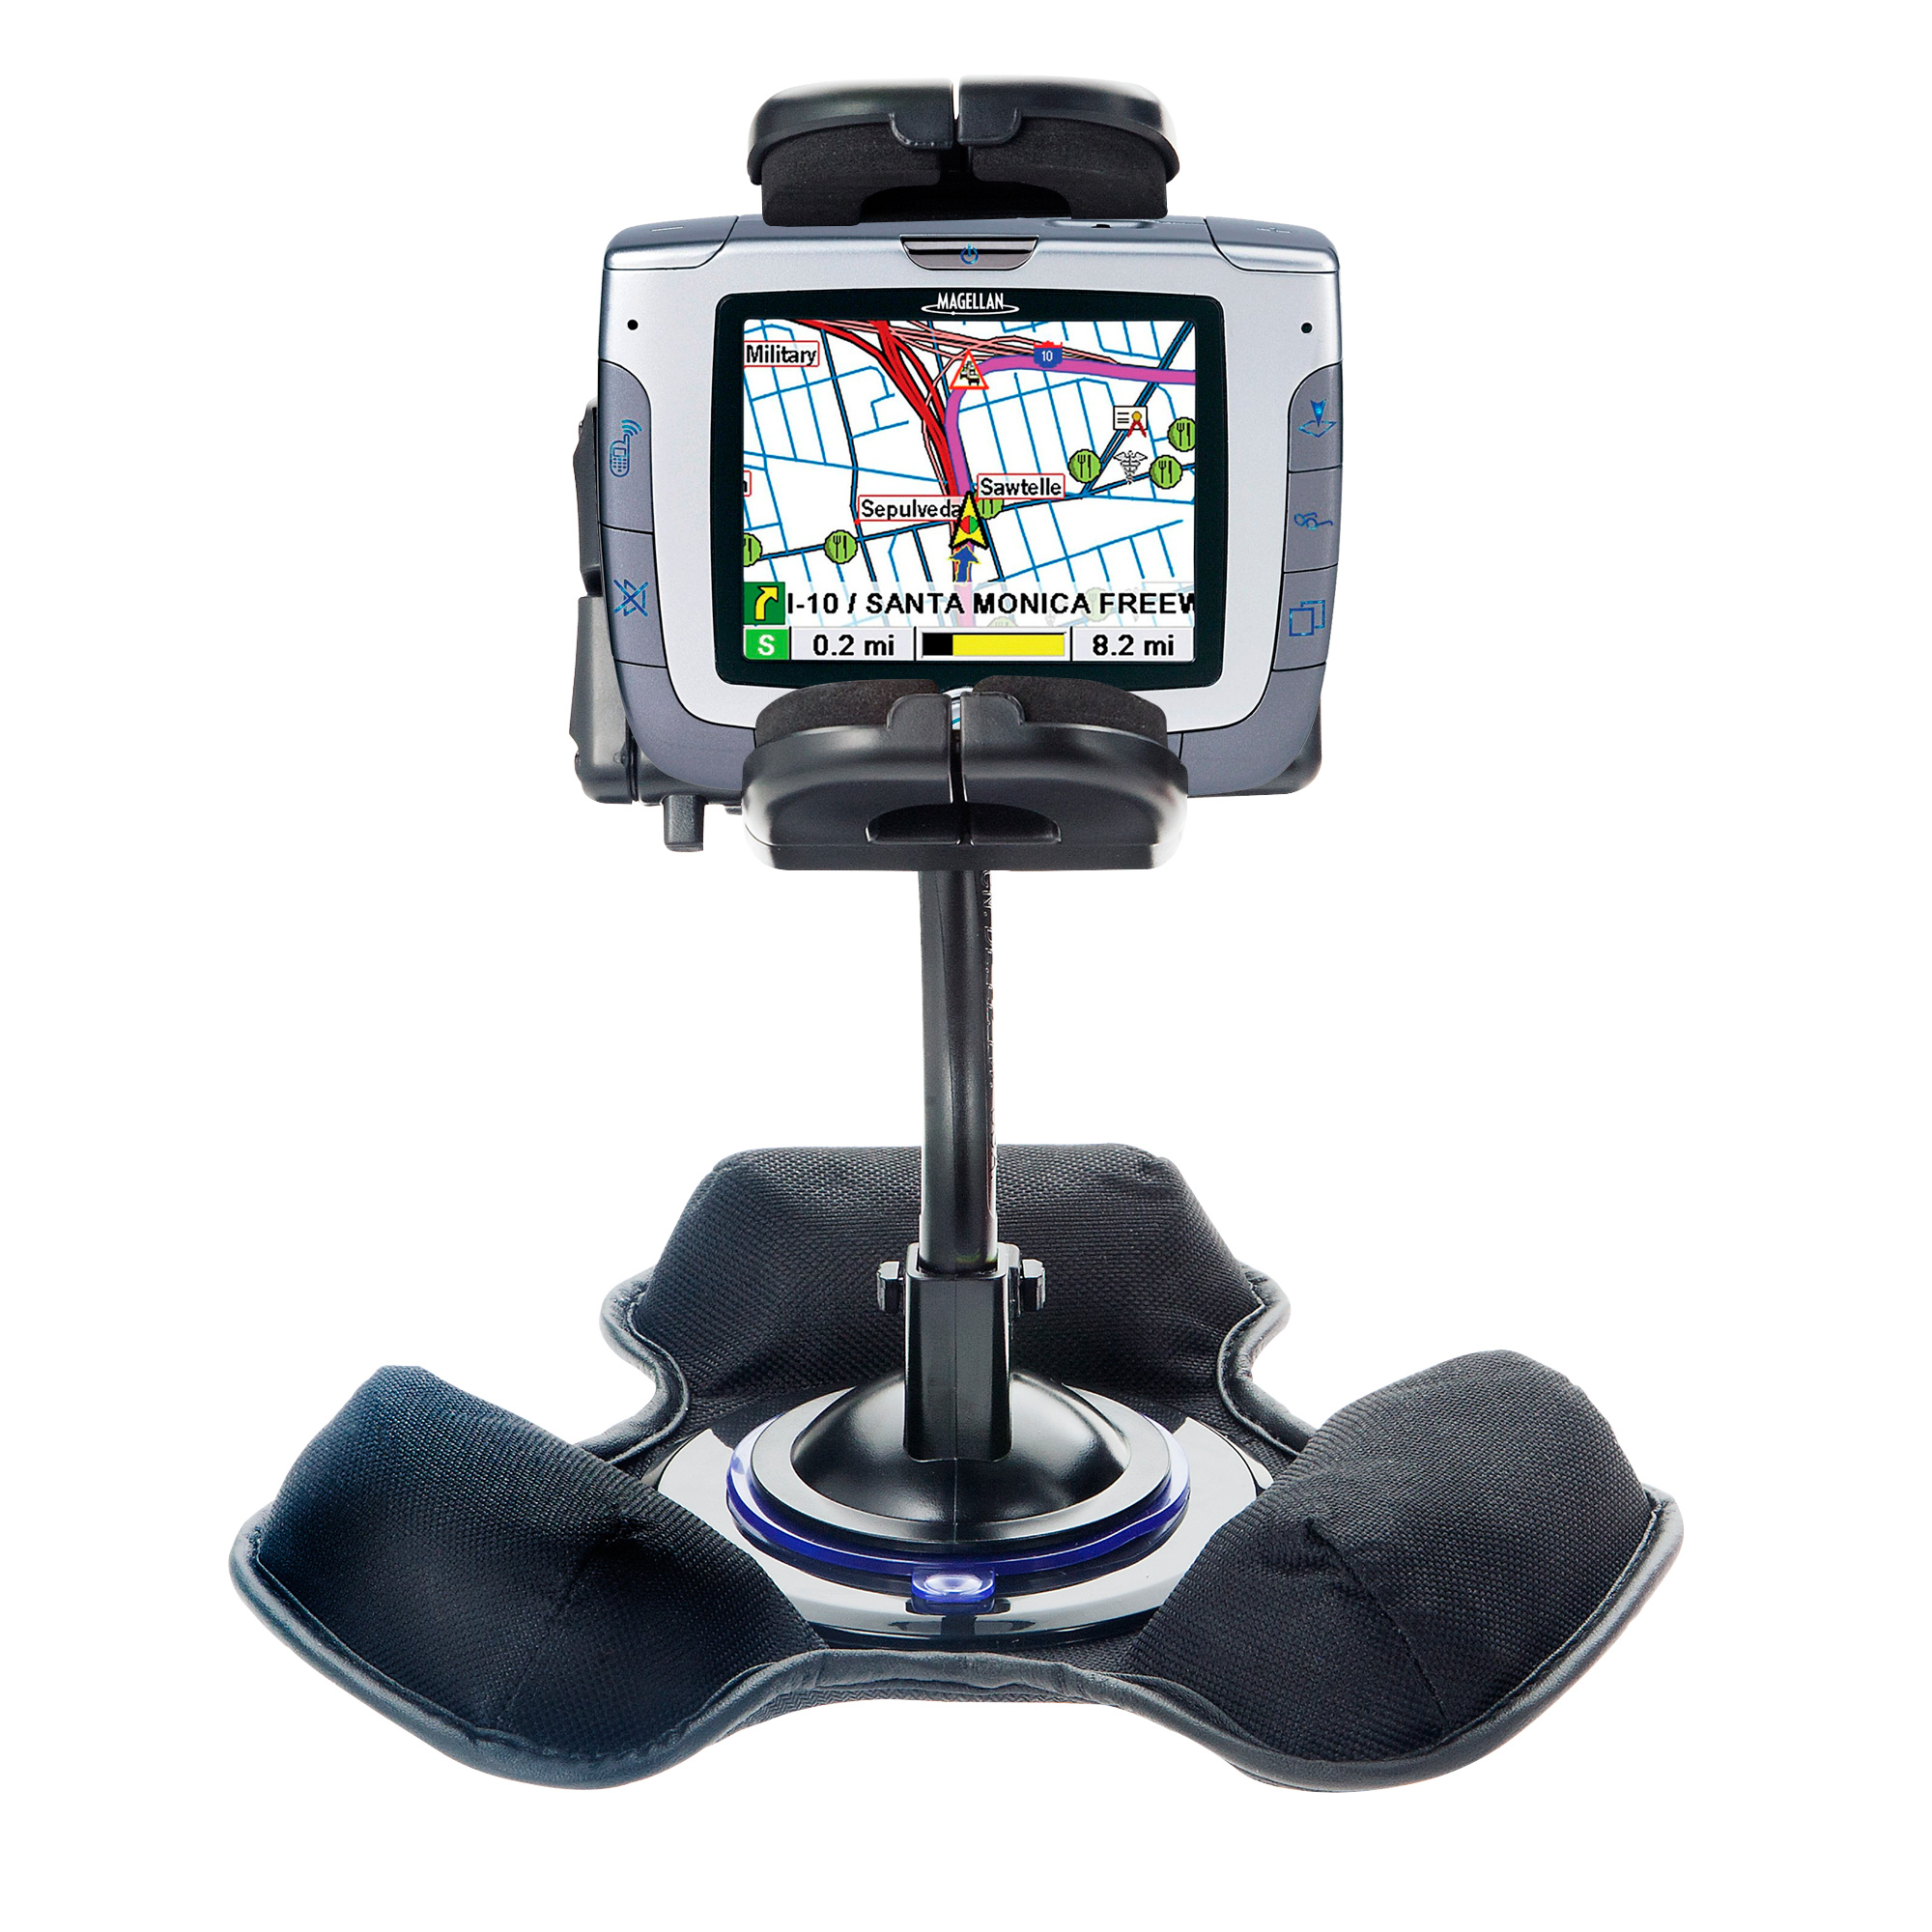 Car / Truck Vehicle Holder Mounting System for Magellan Roadmate 3000T Includes Unique Flexible Windshield Suction and Universal Dashboard Mount Options